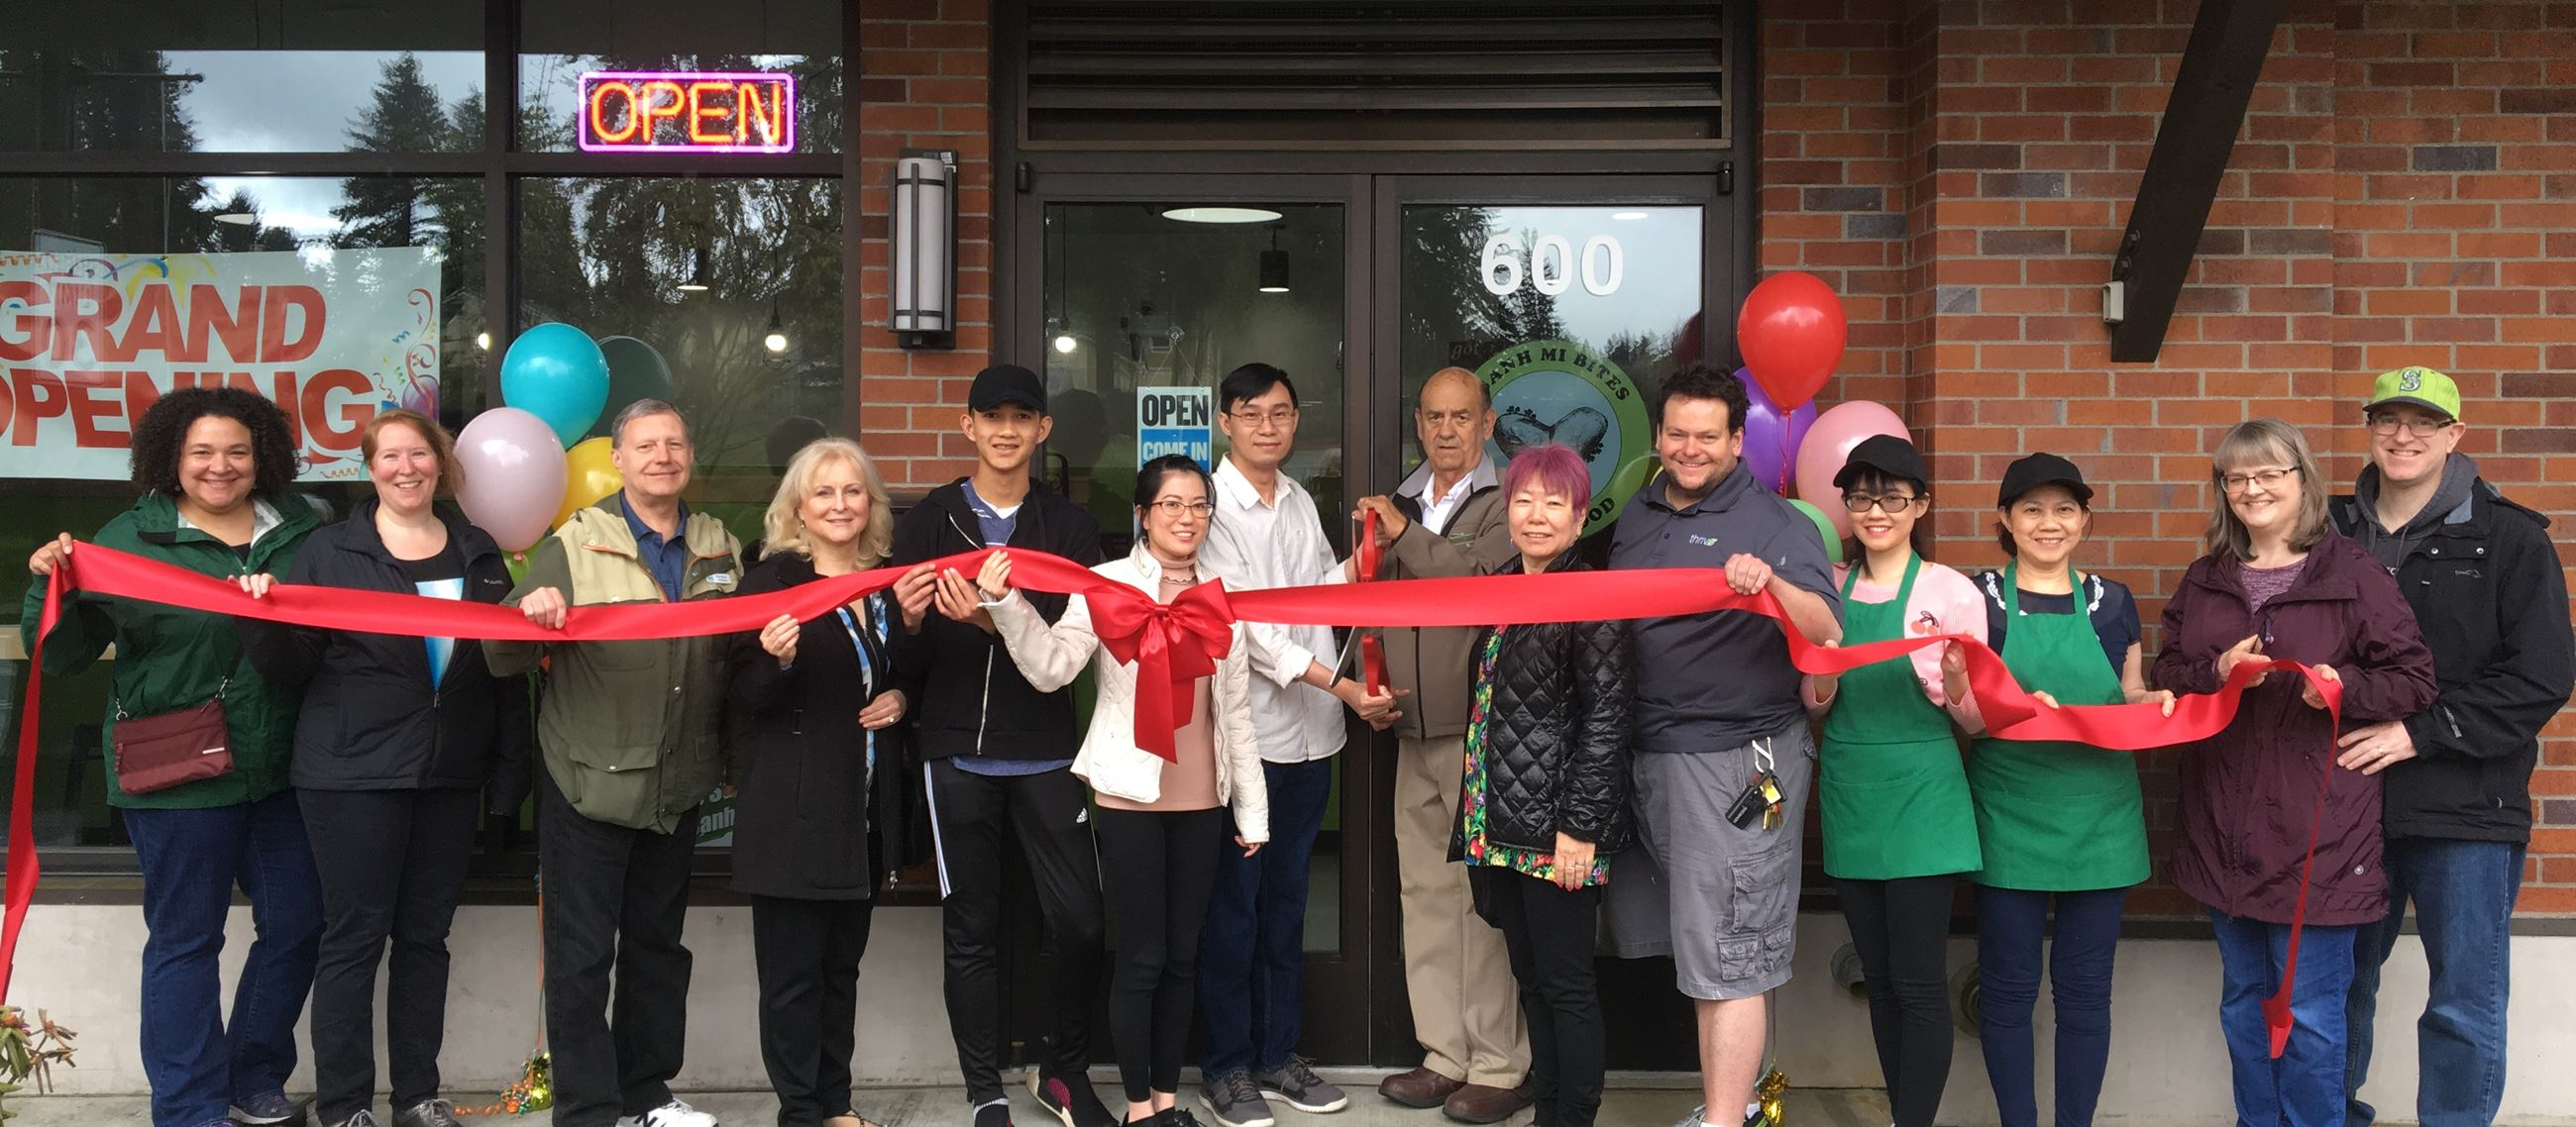 Group of employees and owners of Banh Mi Bites, April 28, 2018 opening